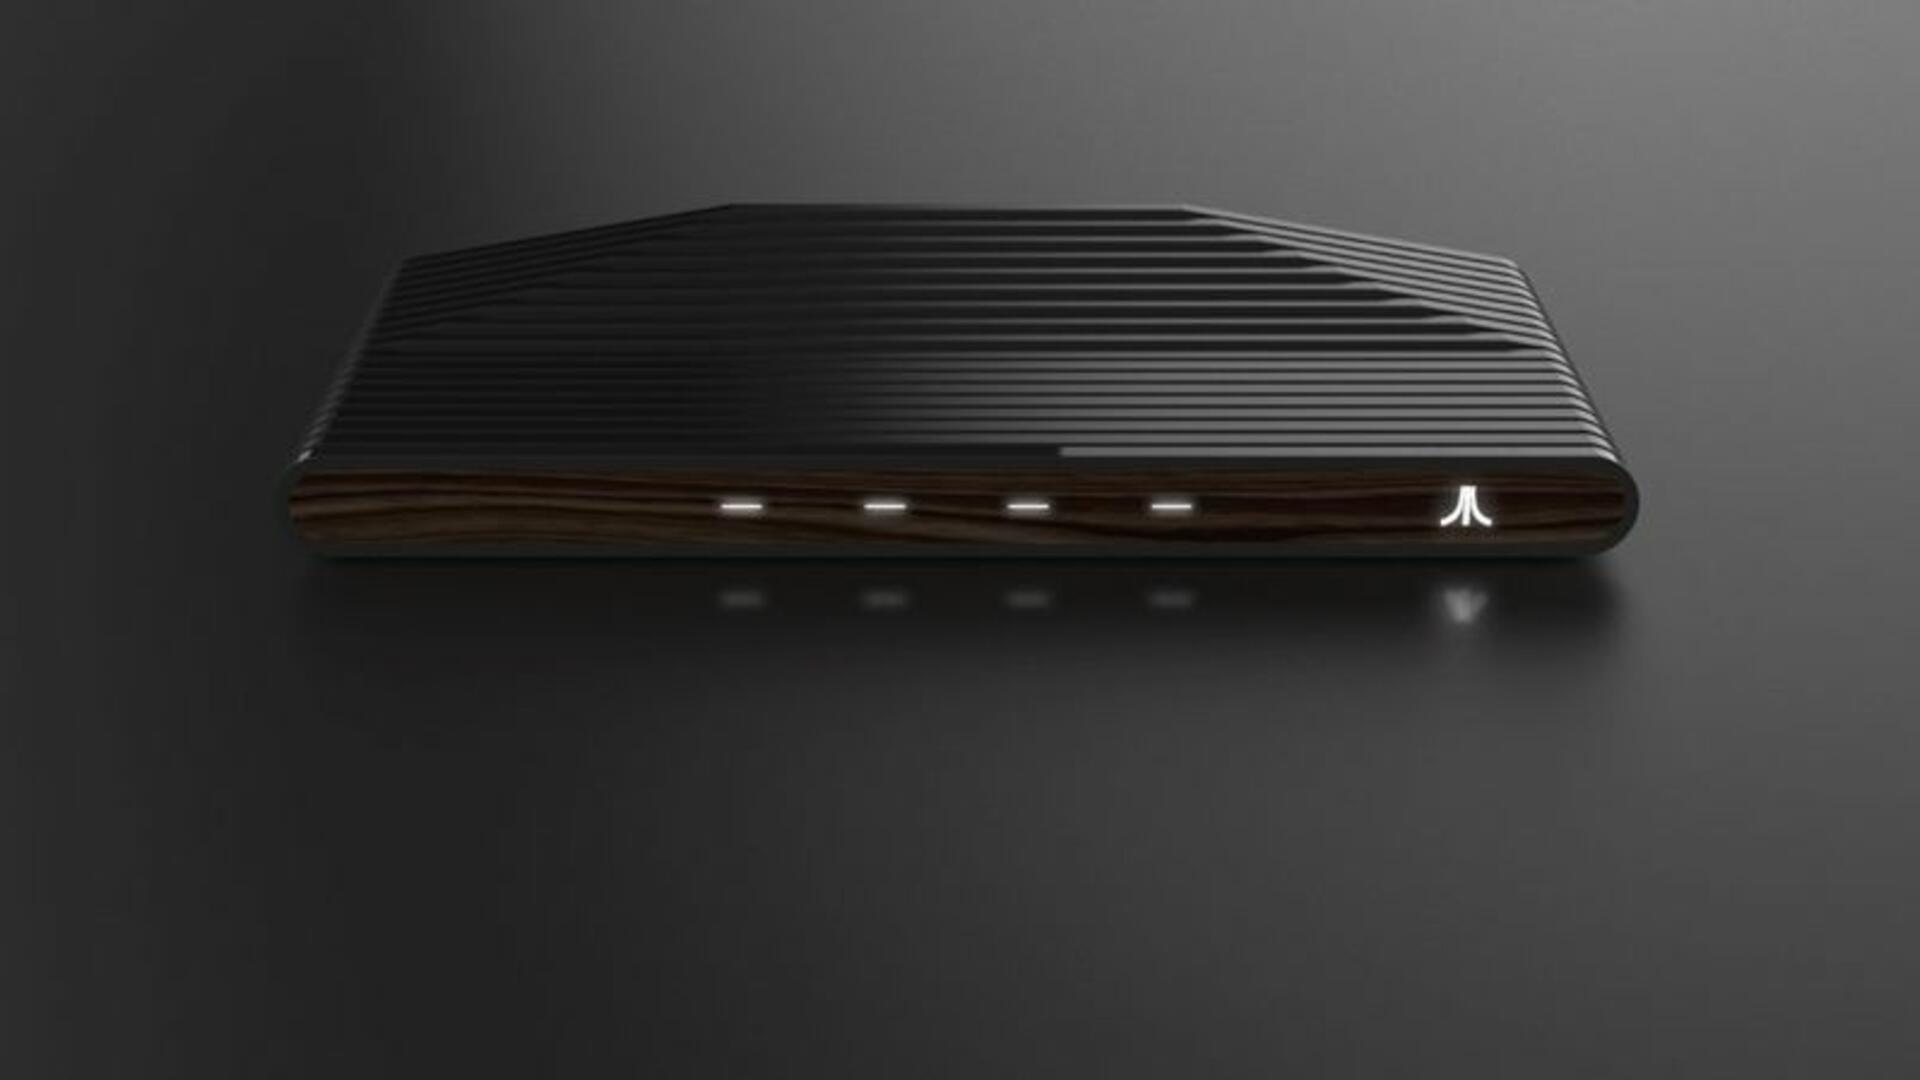 Relive the Past With Atari's New Ataribox